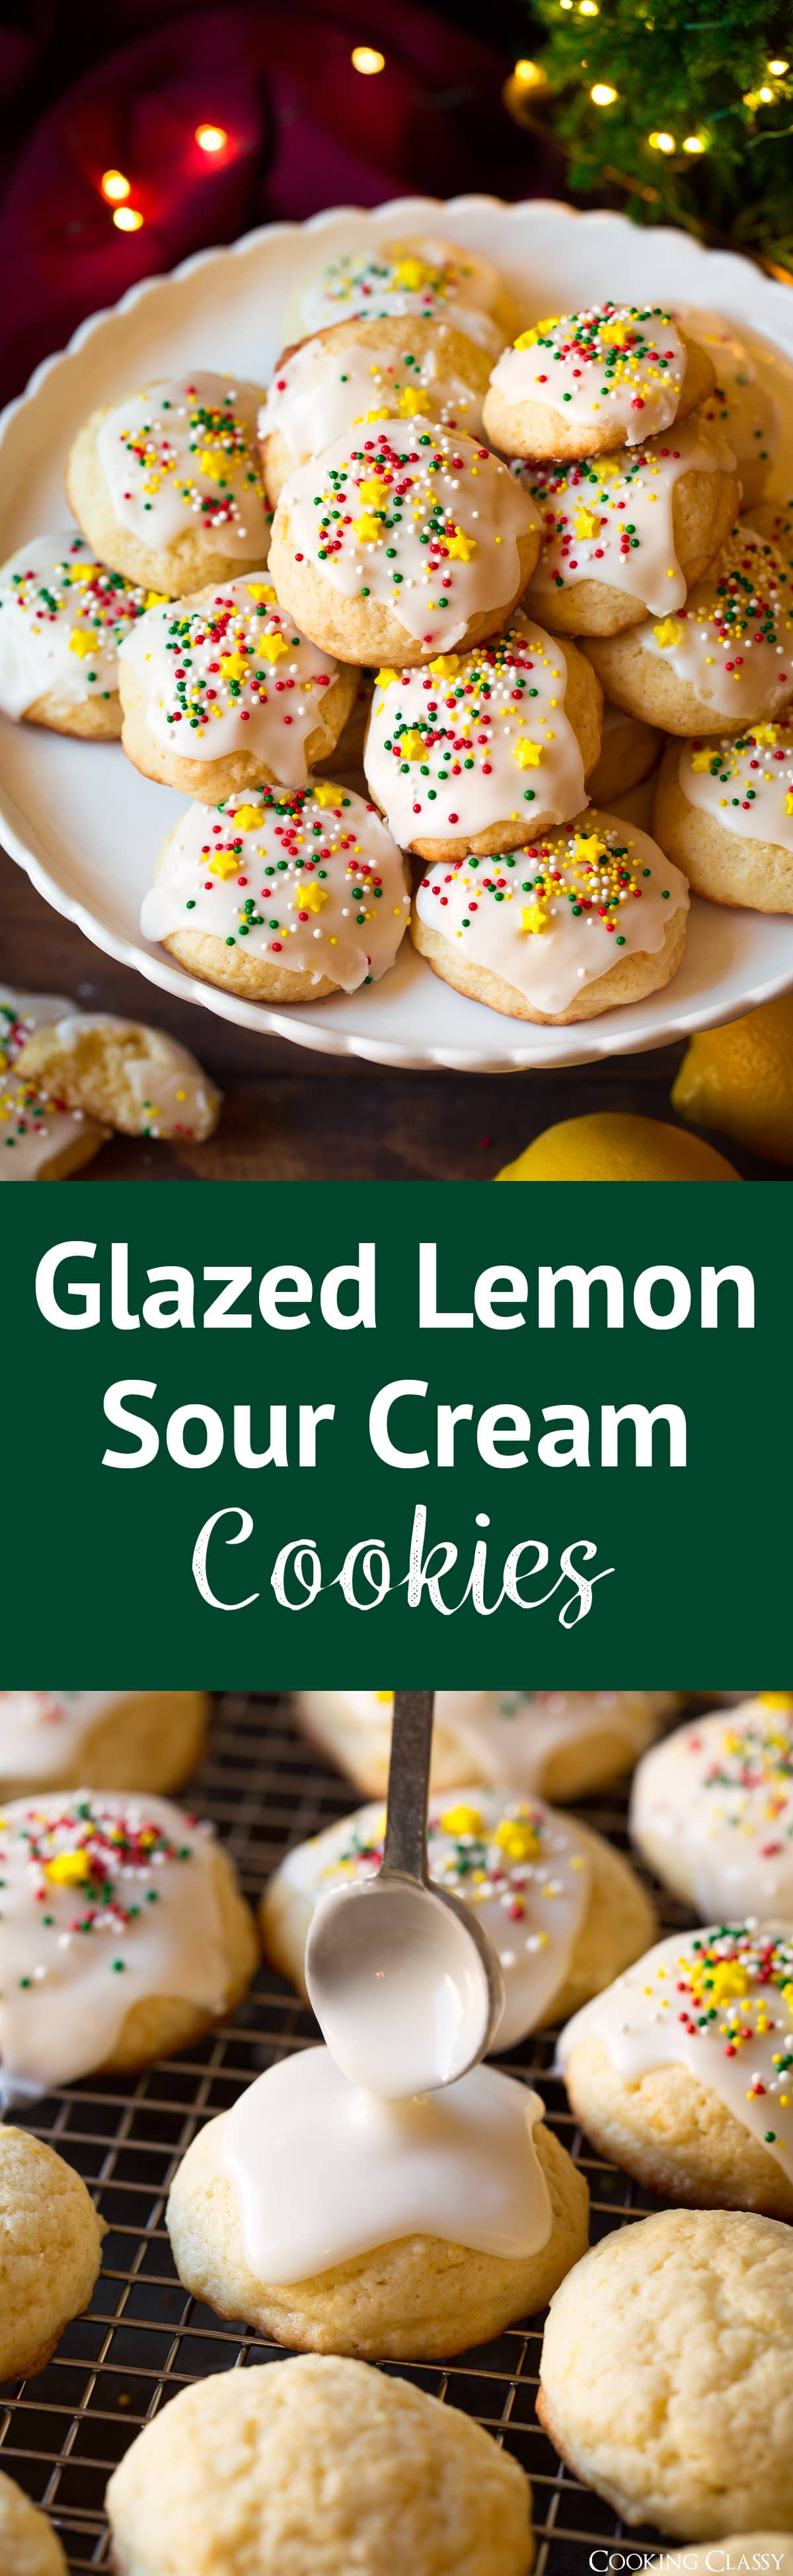 Glazed Lemon Sour Cream Cookies - A melt-in-your-mouth, flavorful, super soft cookie that's topped with a sweet and simple lemon cream cheese glaze. Easy to make and even easier to eat and fall in love! #christmascookies #lemoncookies #dessert #recipe #cookies